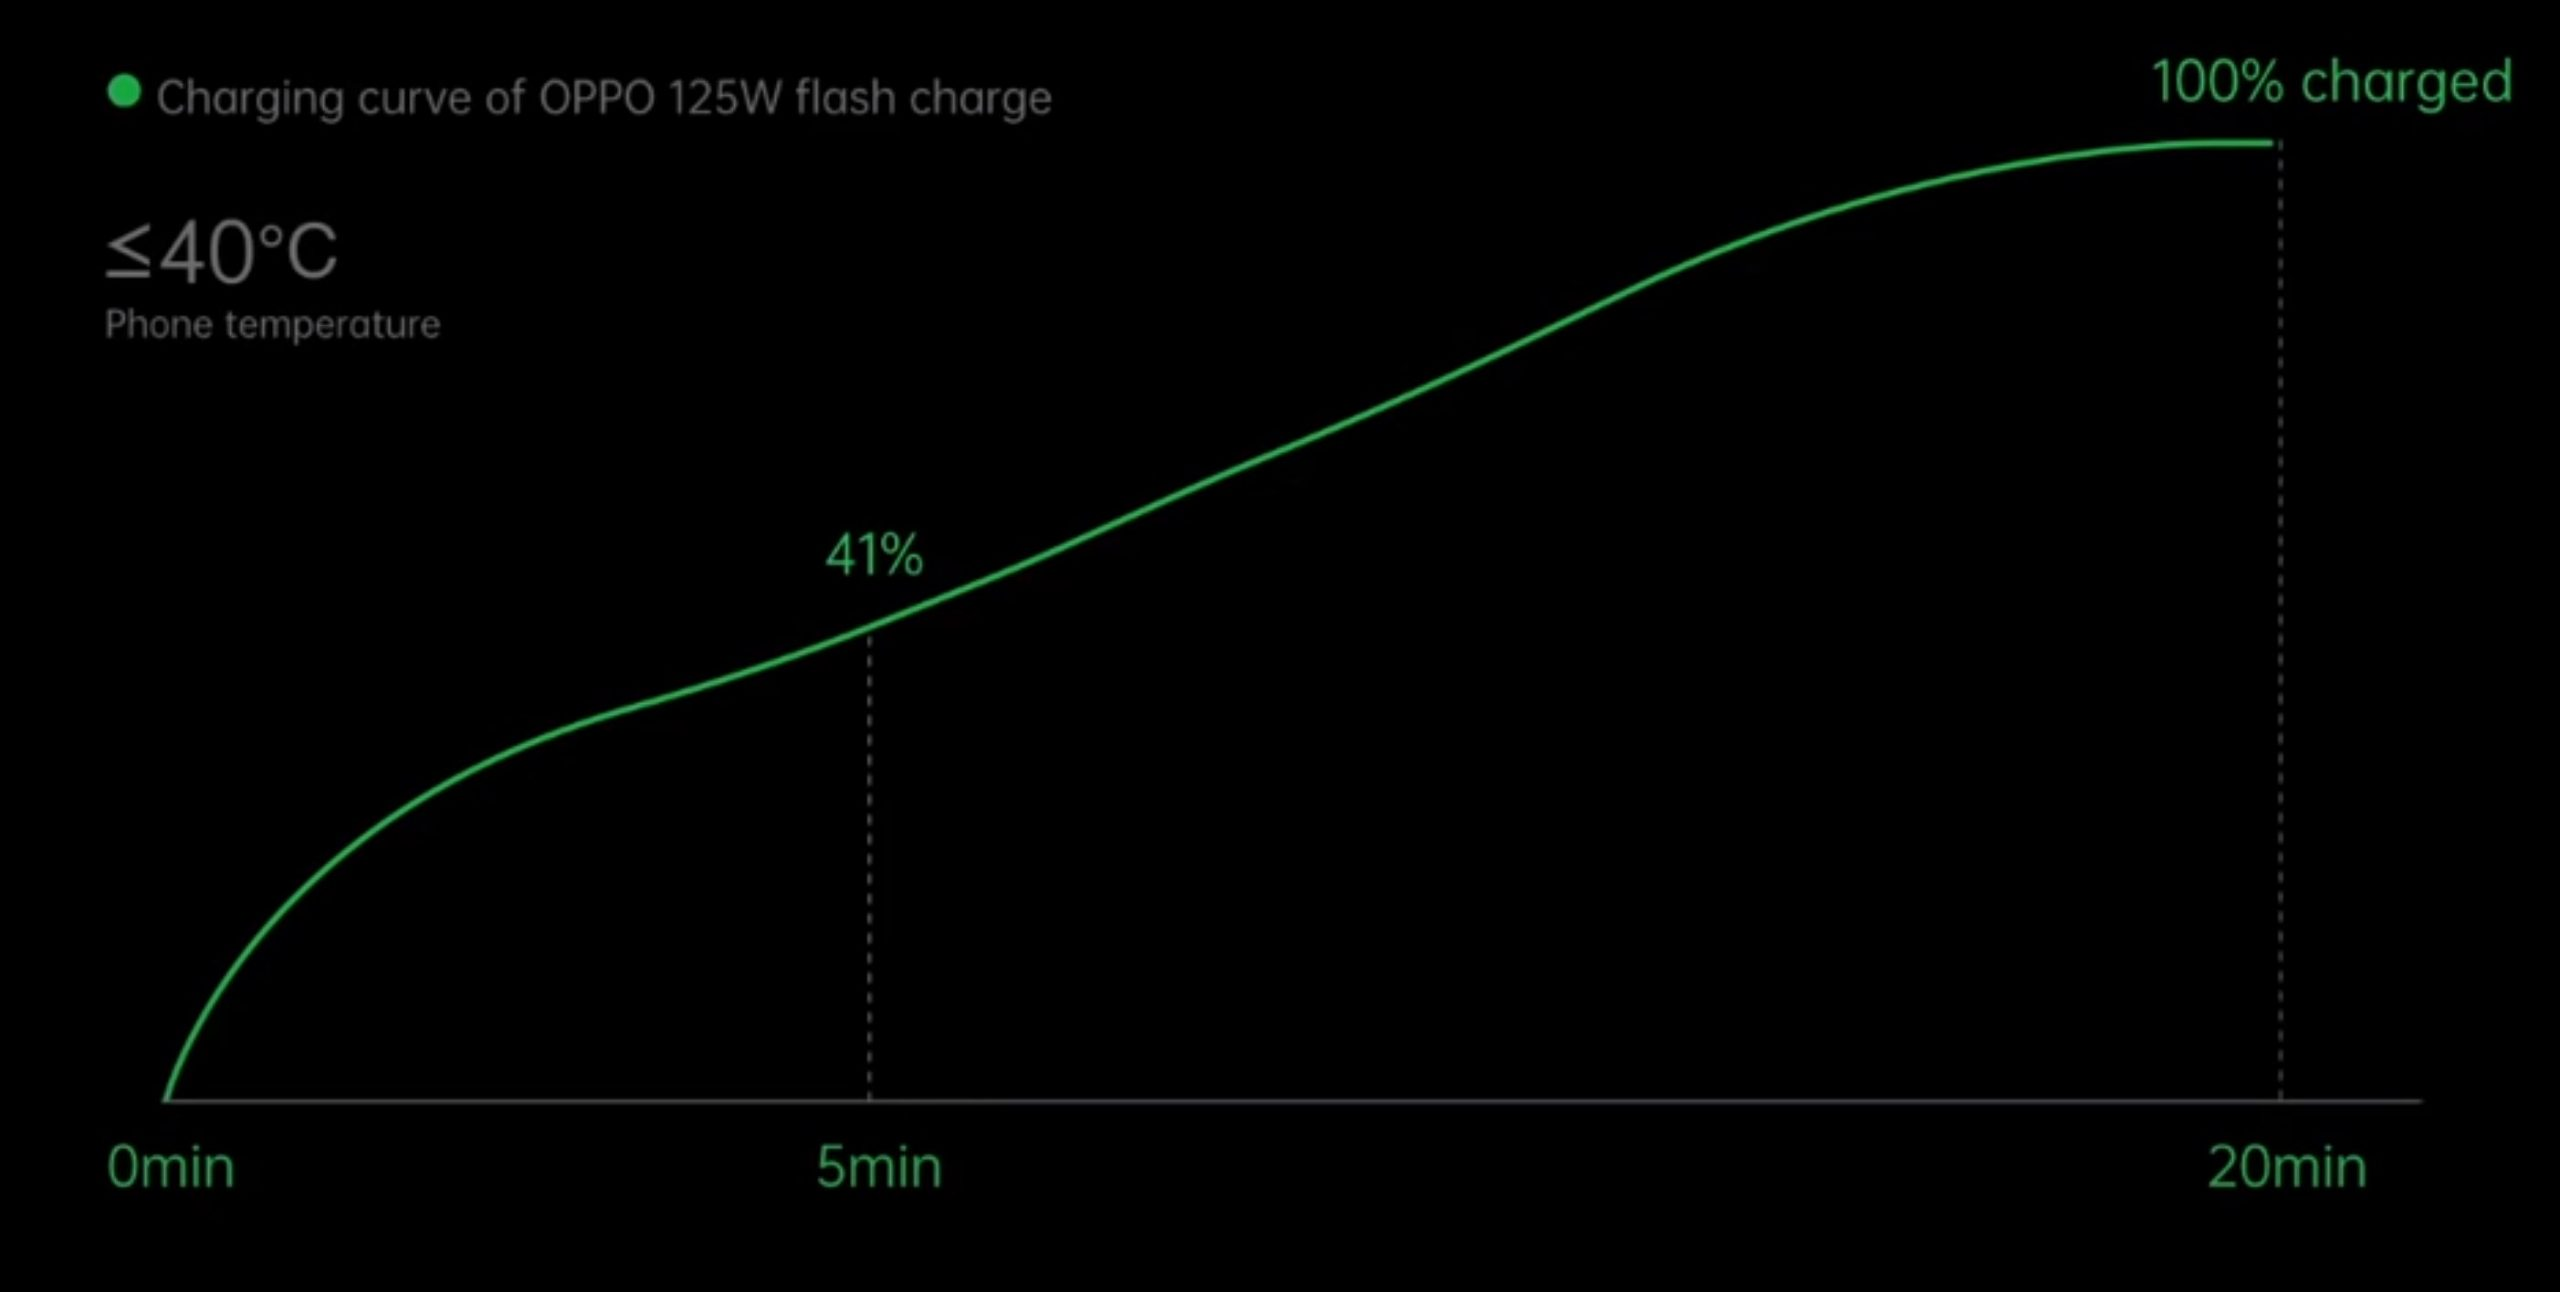 Oppo 125 Flash Charging Speed